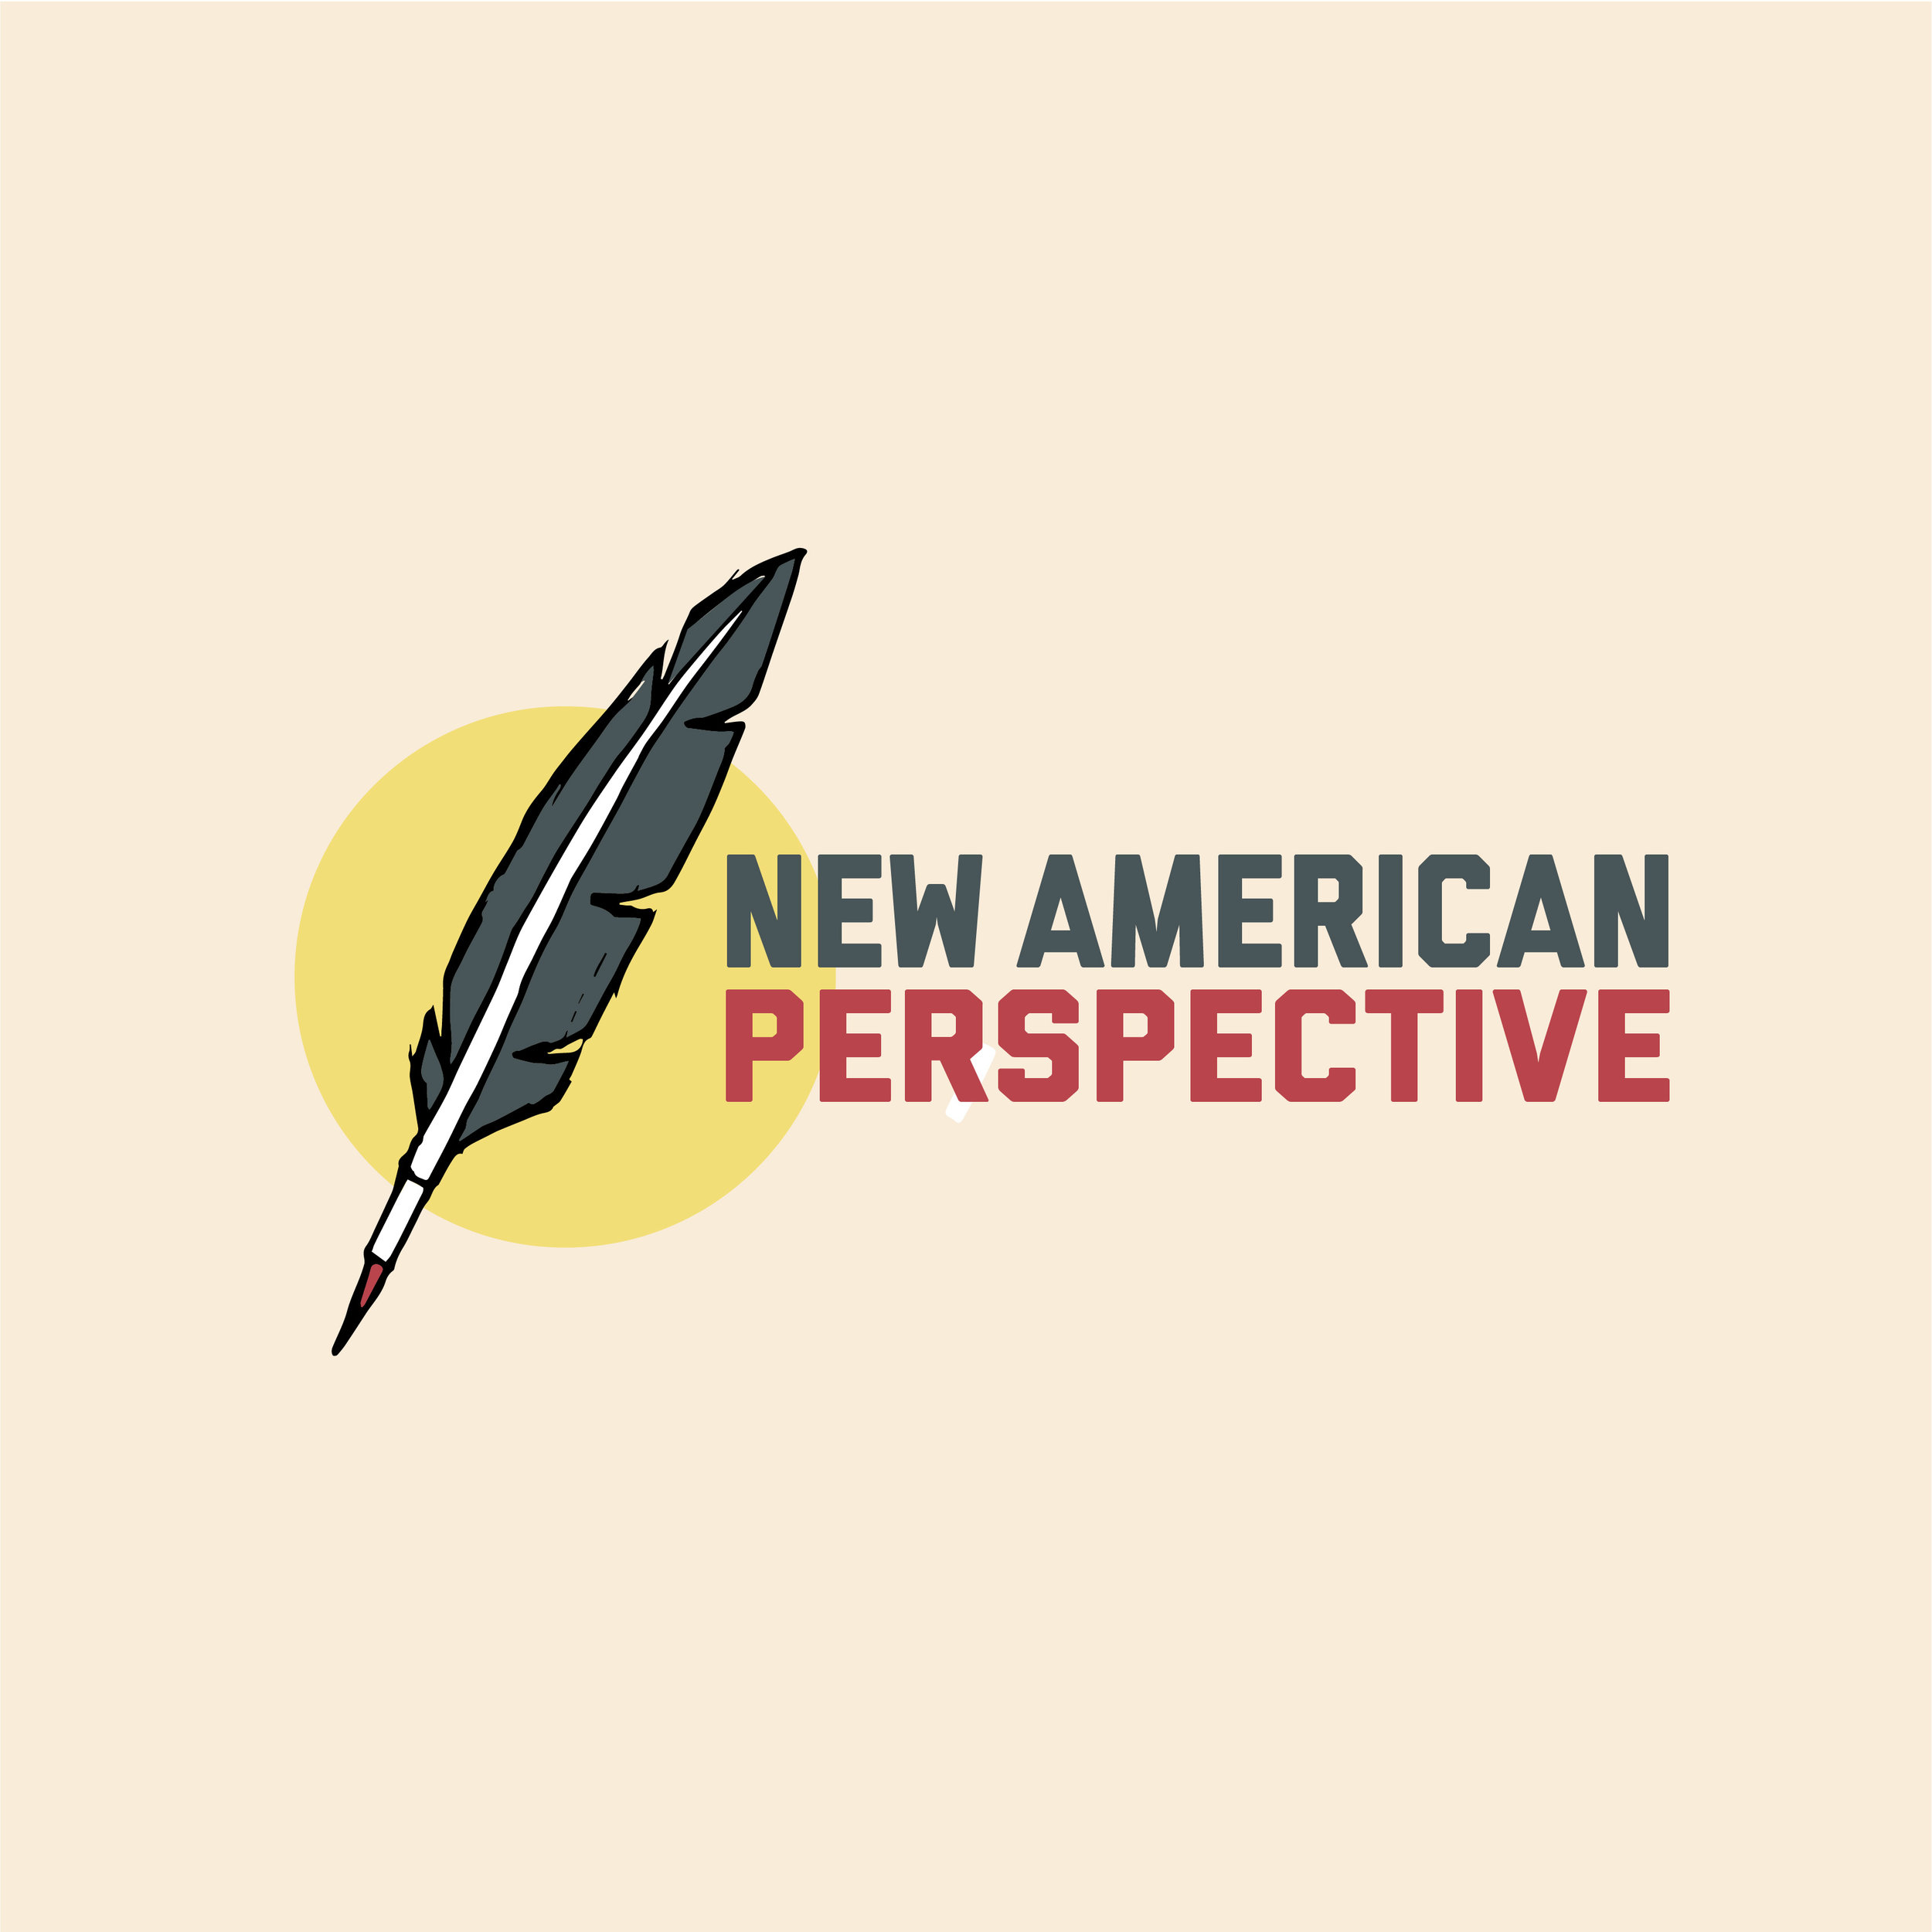 New American Perspective  Branding and website can be found  here